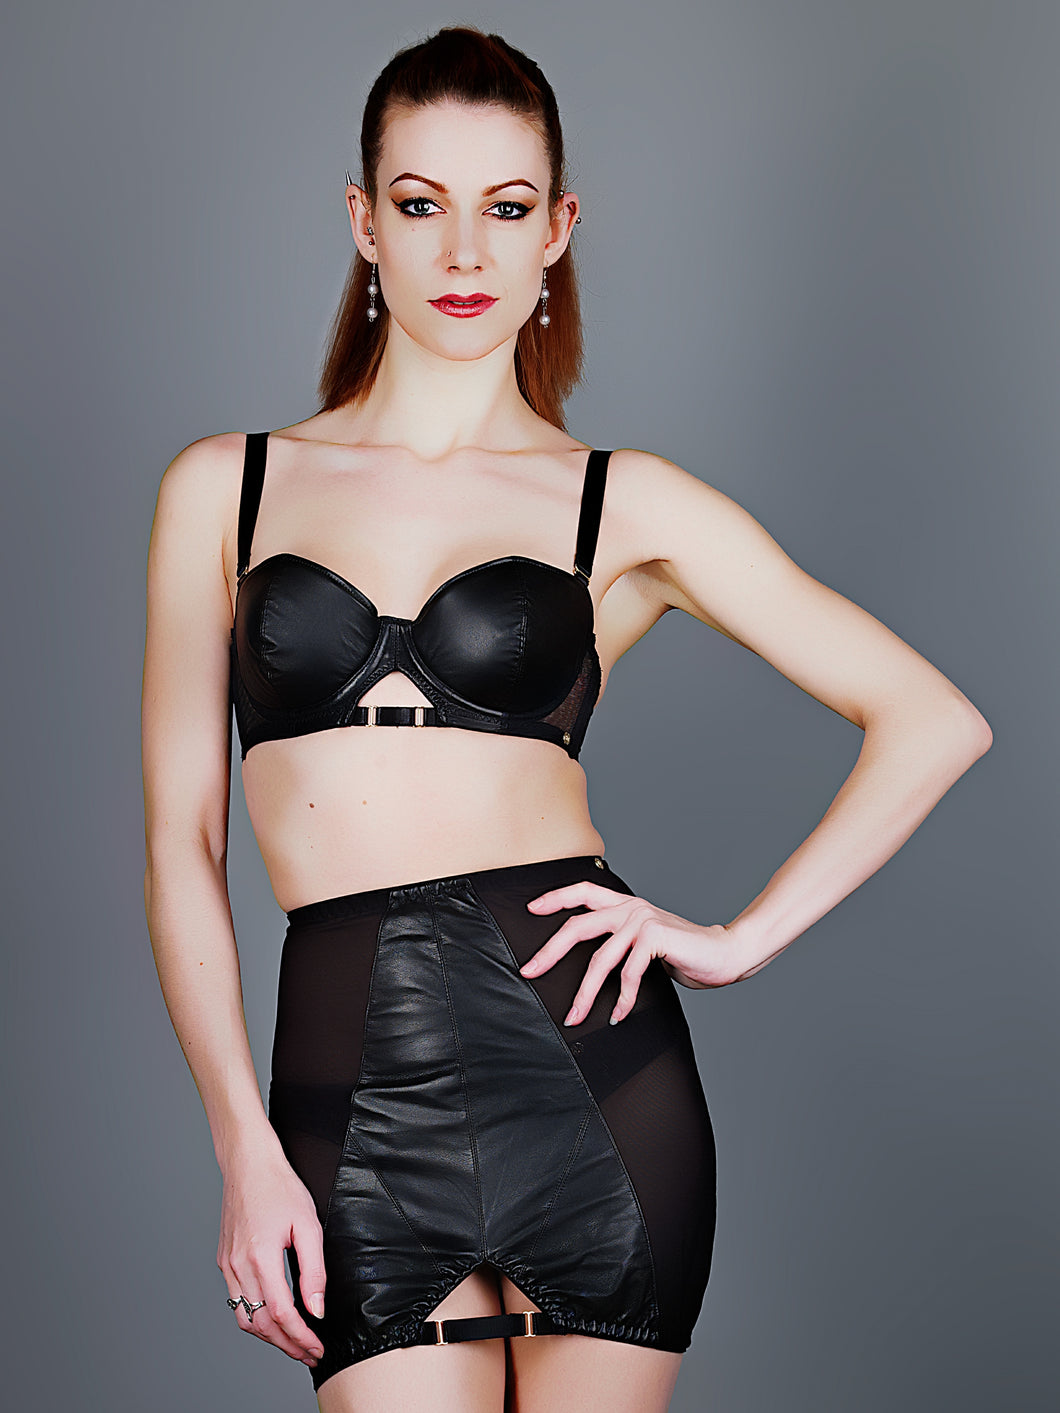 Something Wicked Montana Leather Girdle